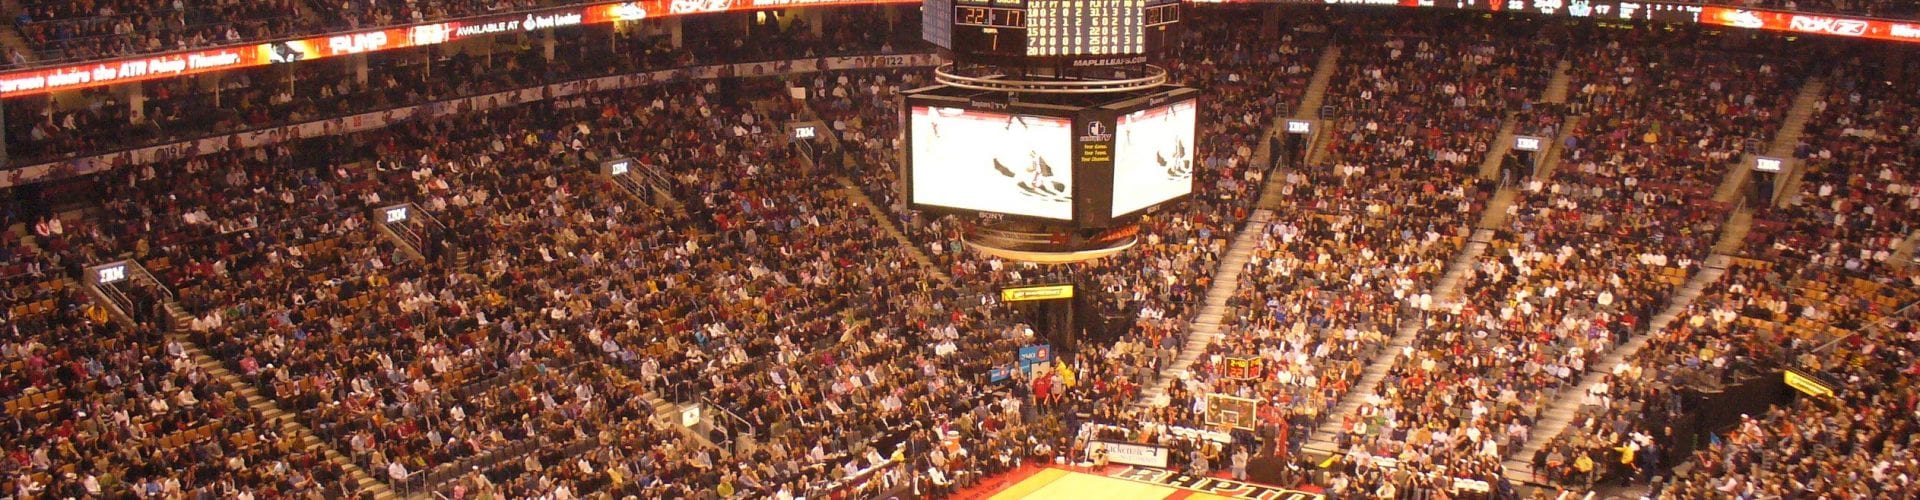 NBA, NHL Finals Dominate Holiday Best-Selling Events